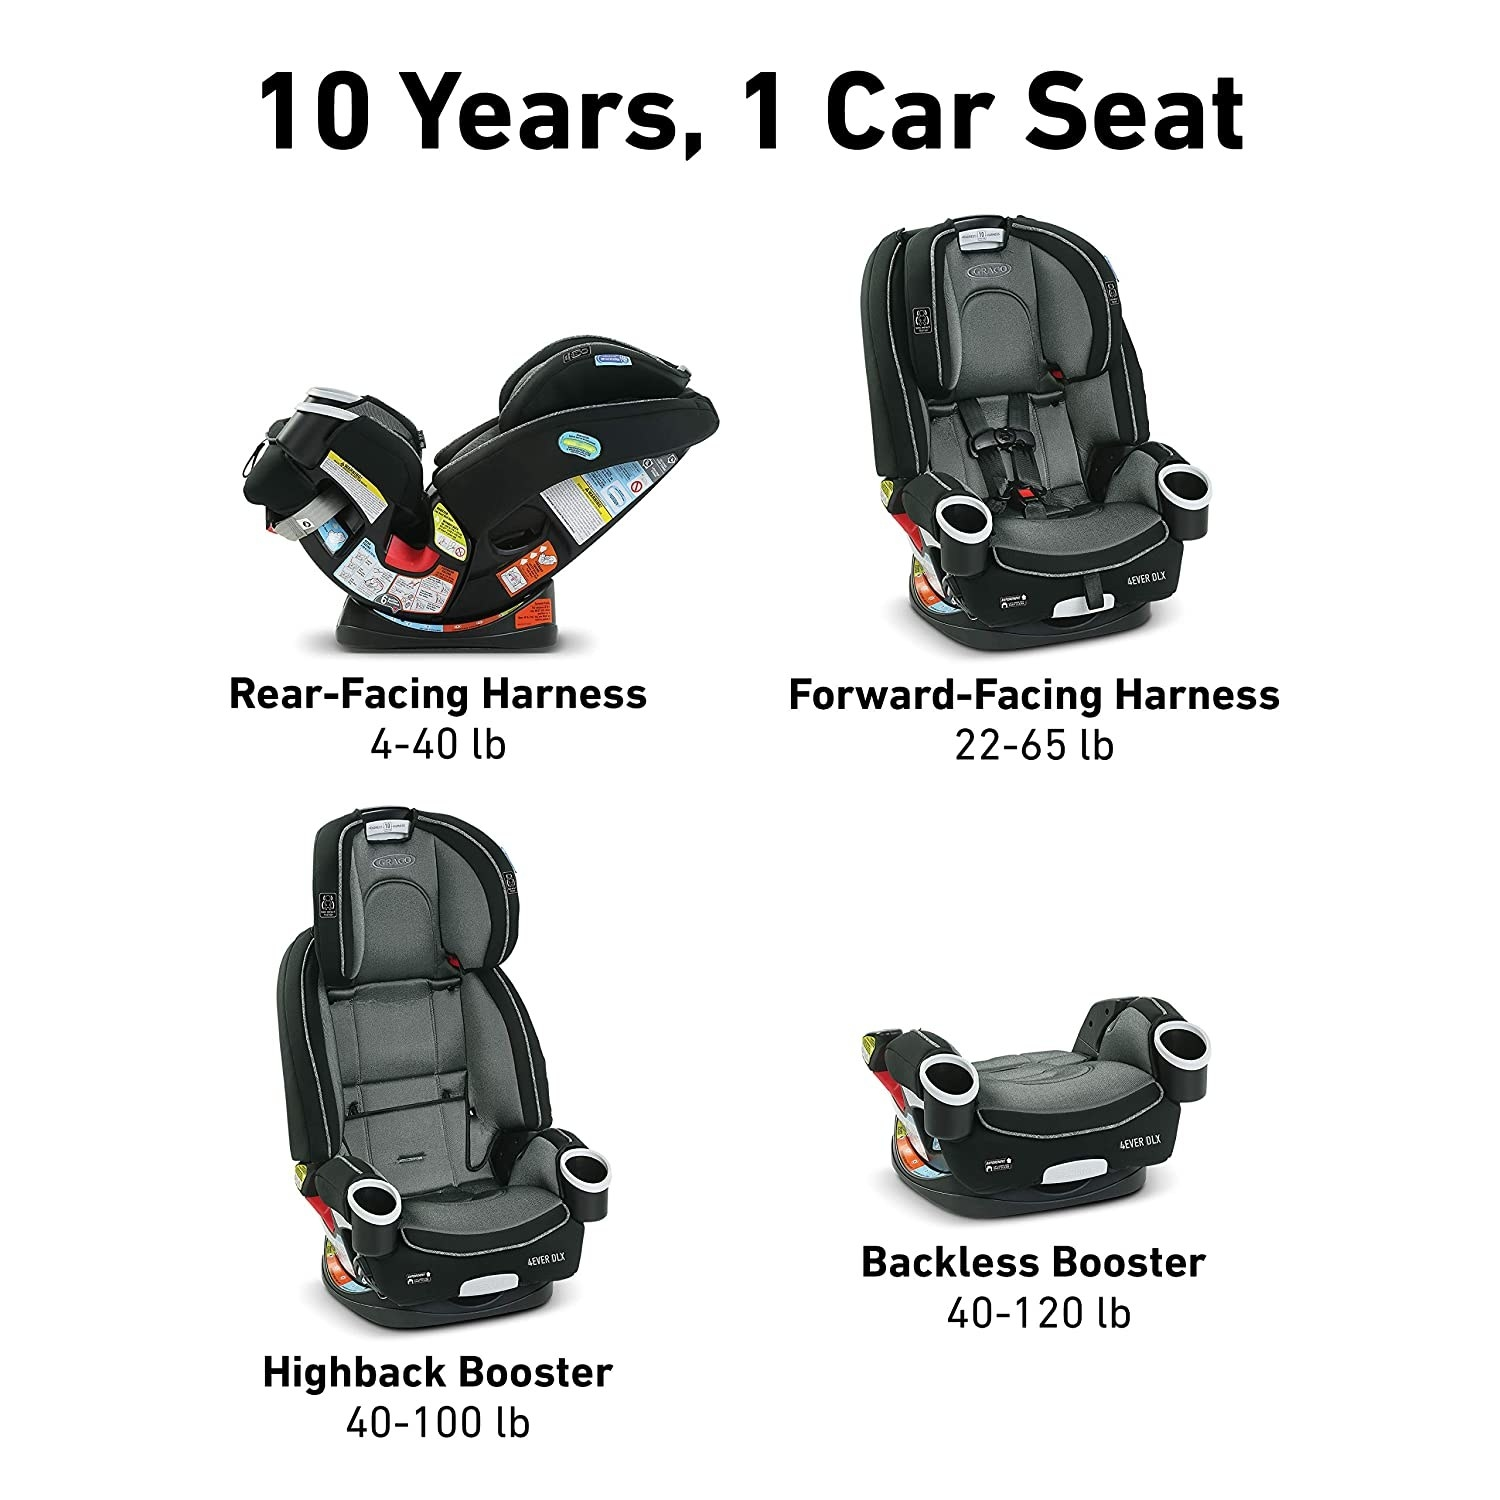 Infographic showing the different ways you can use the car seat, including as a rear-facing harness and a backless booster seat